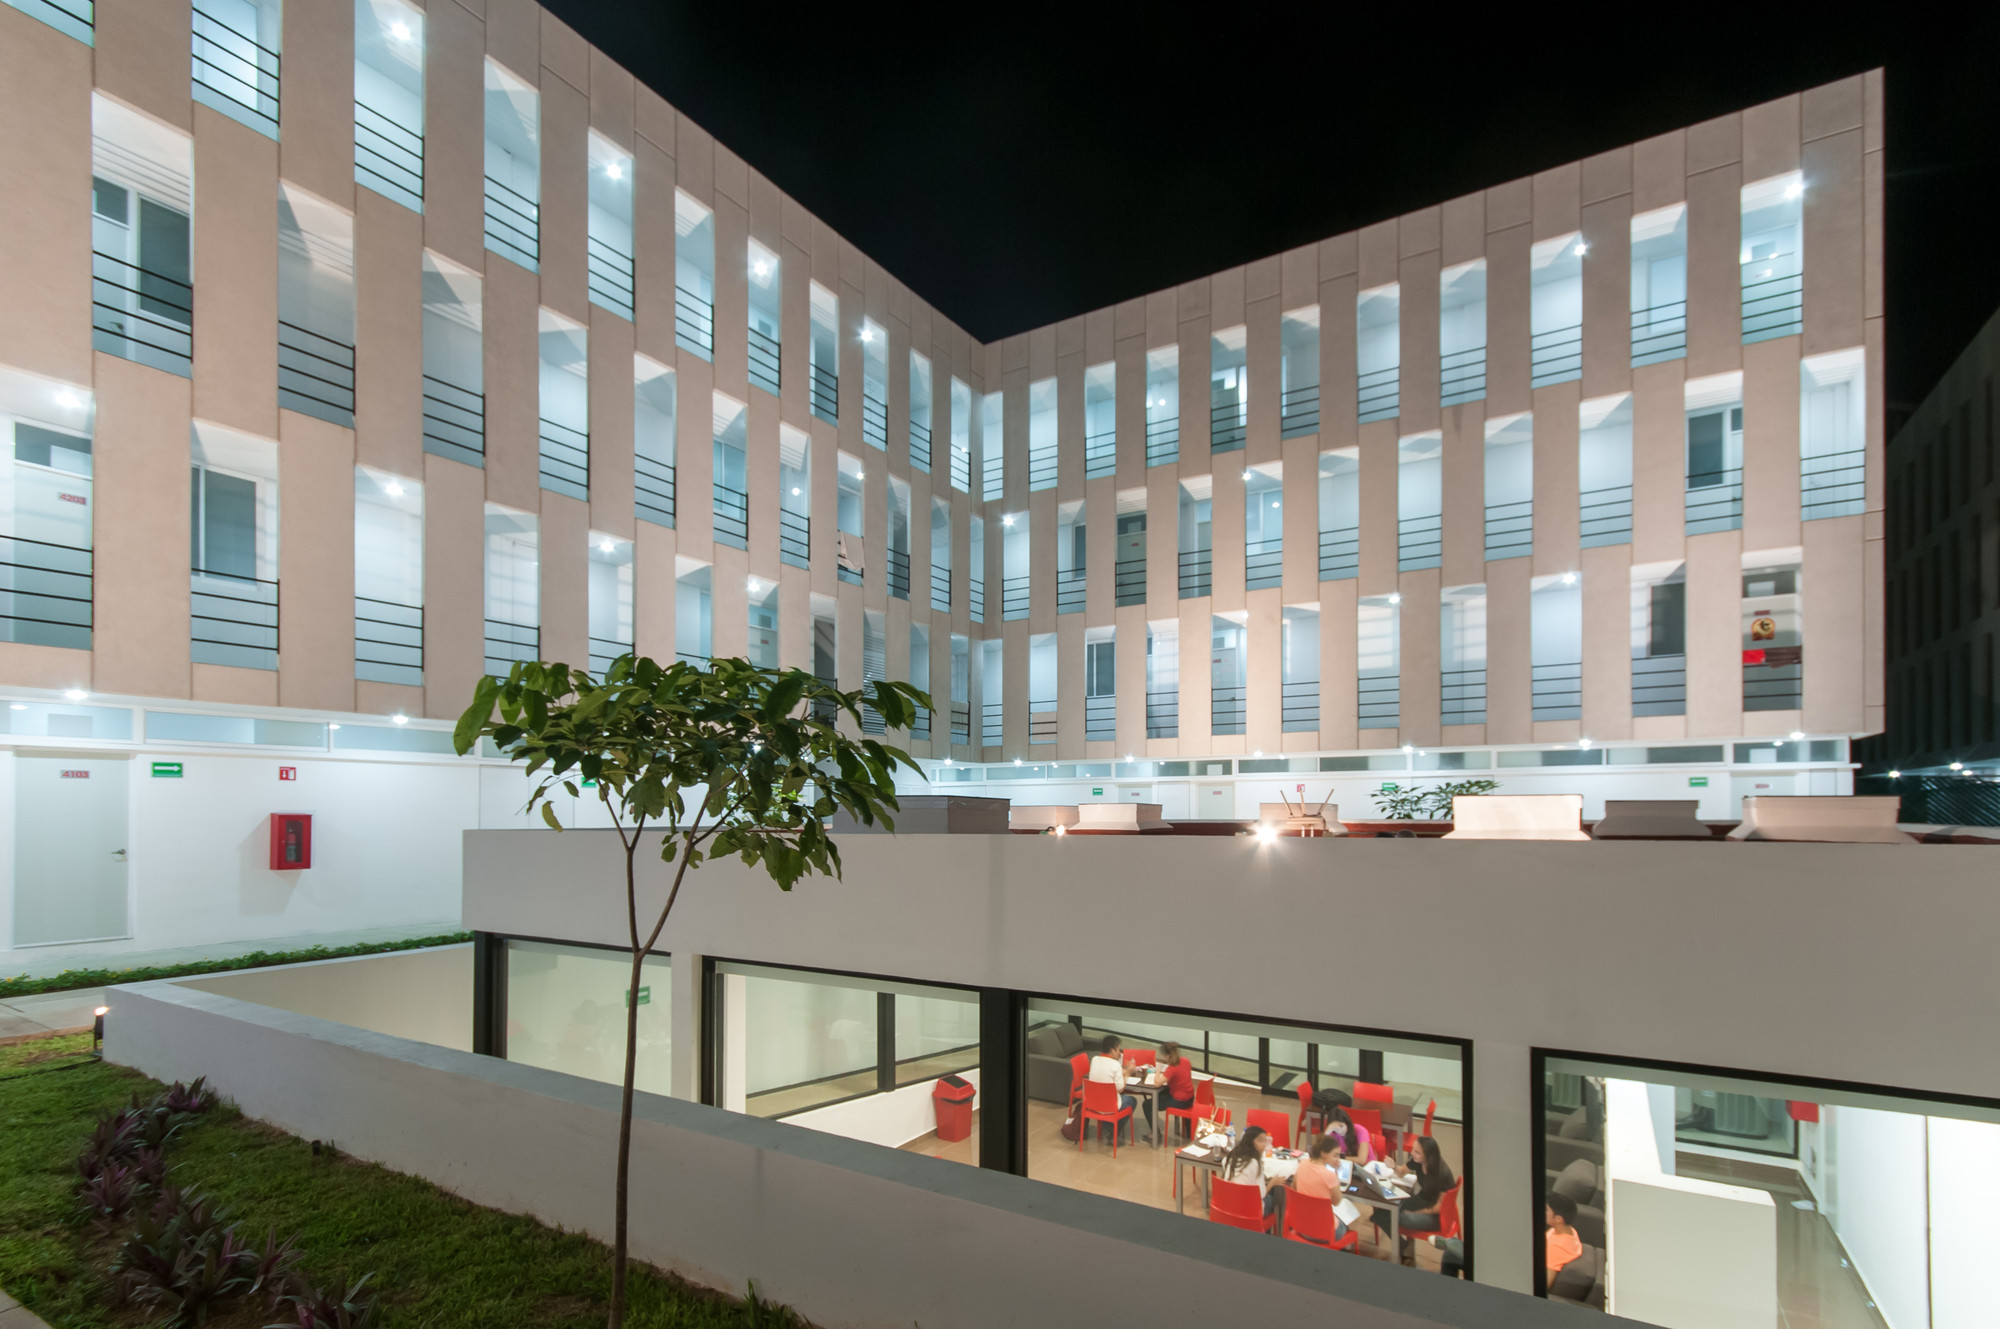 Campus university city lavalle peniche arquitectos for Plataforma arquitectura